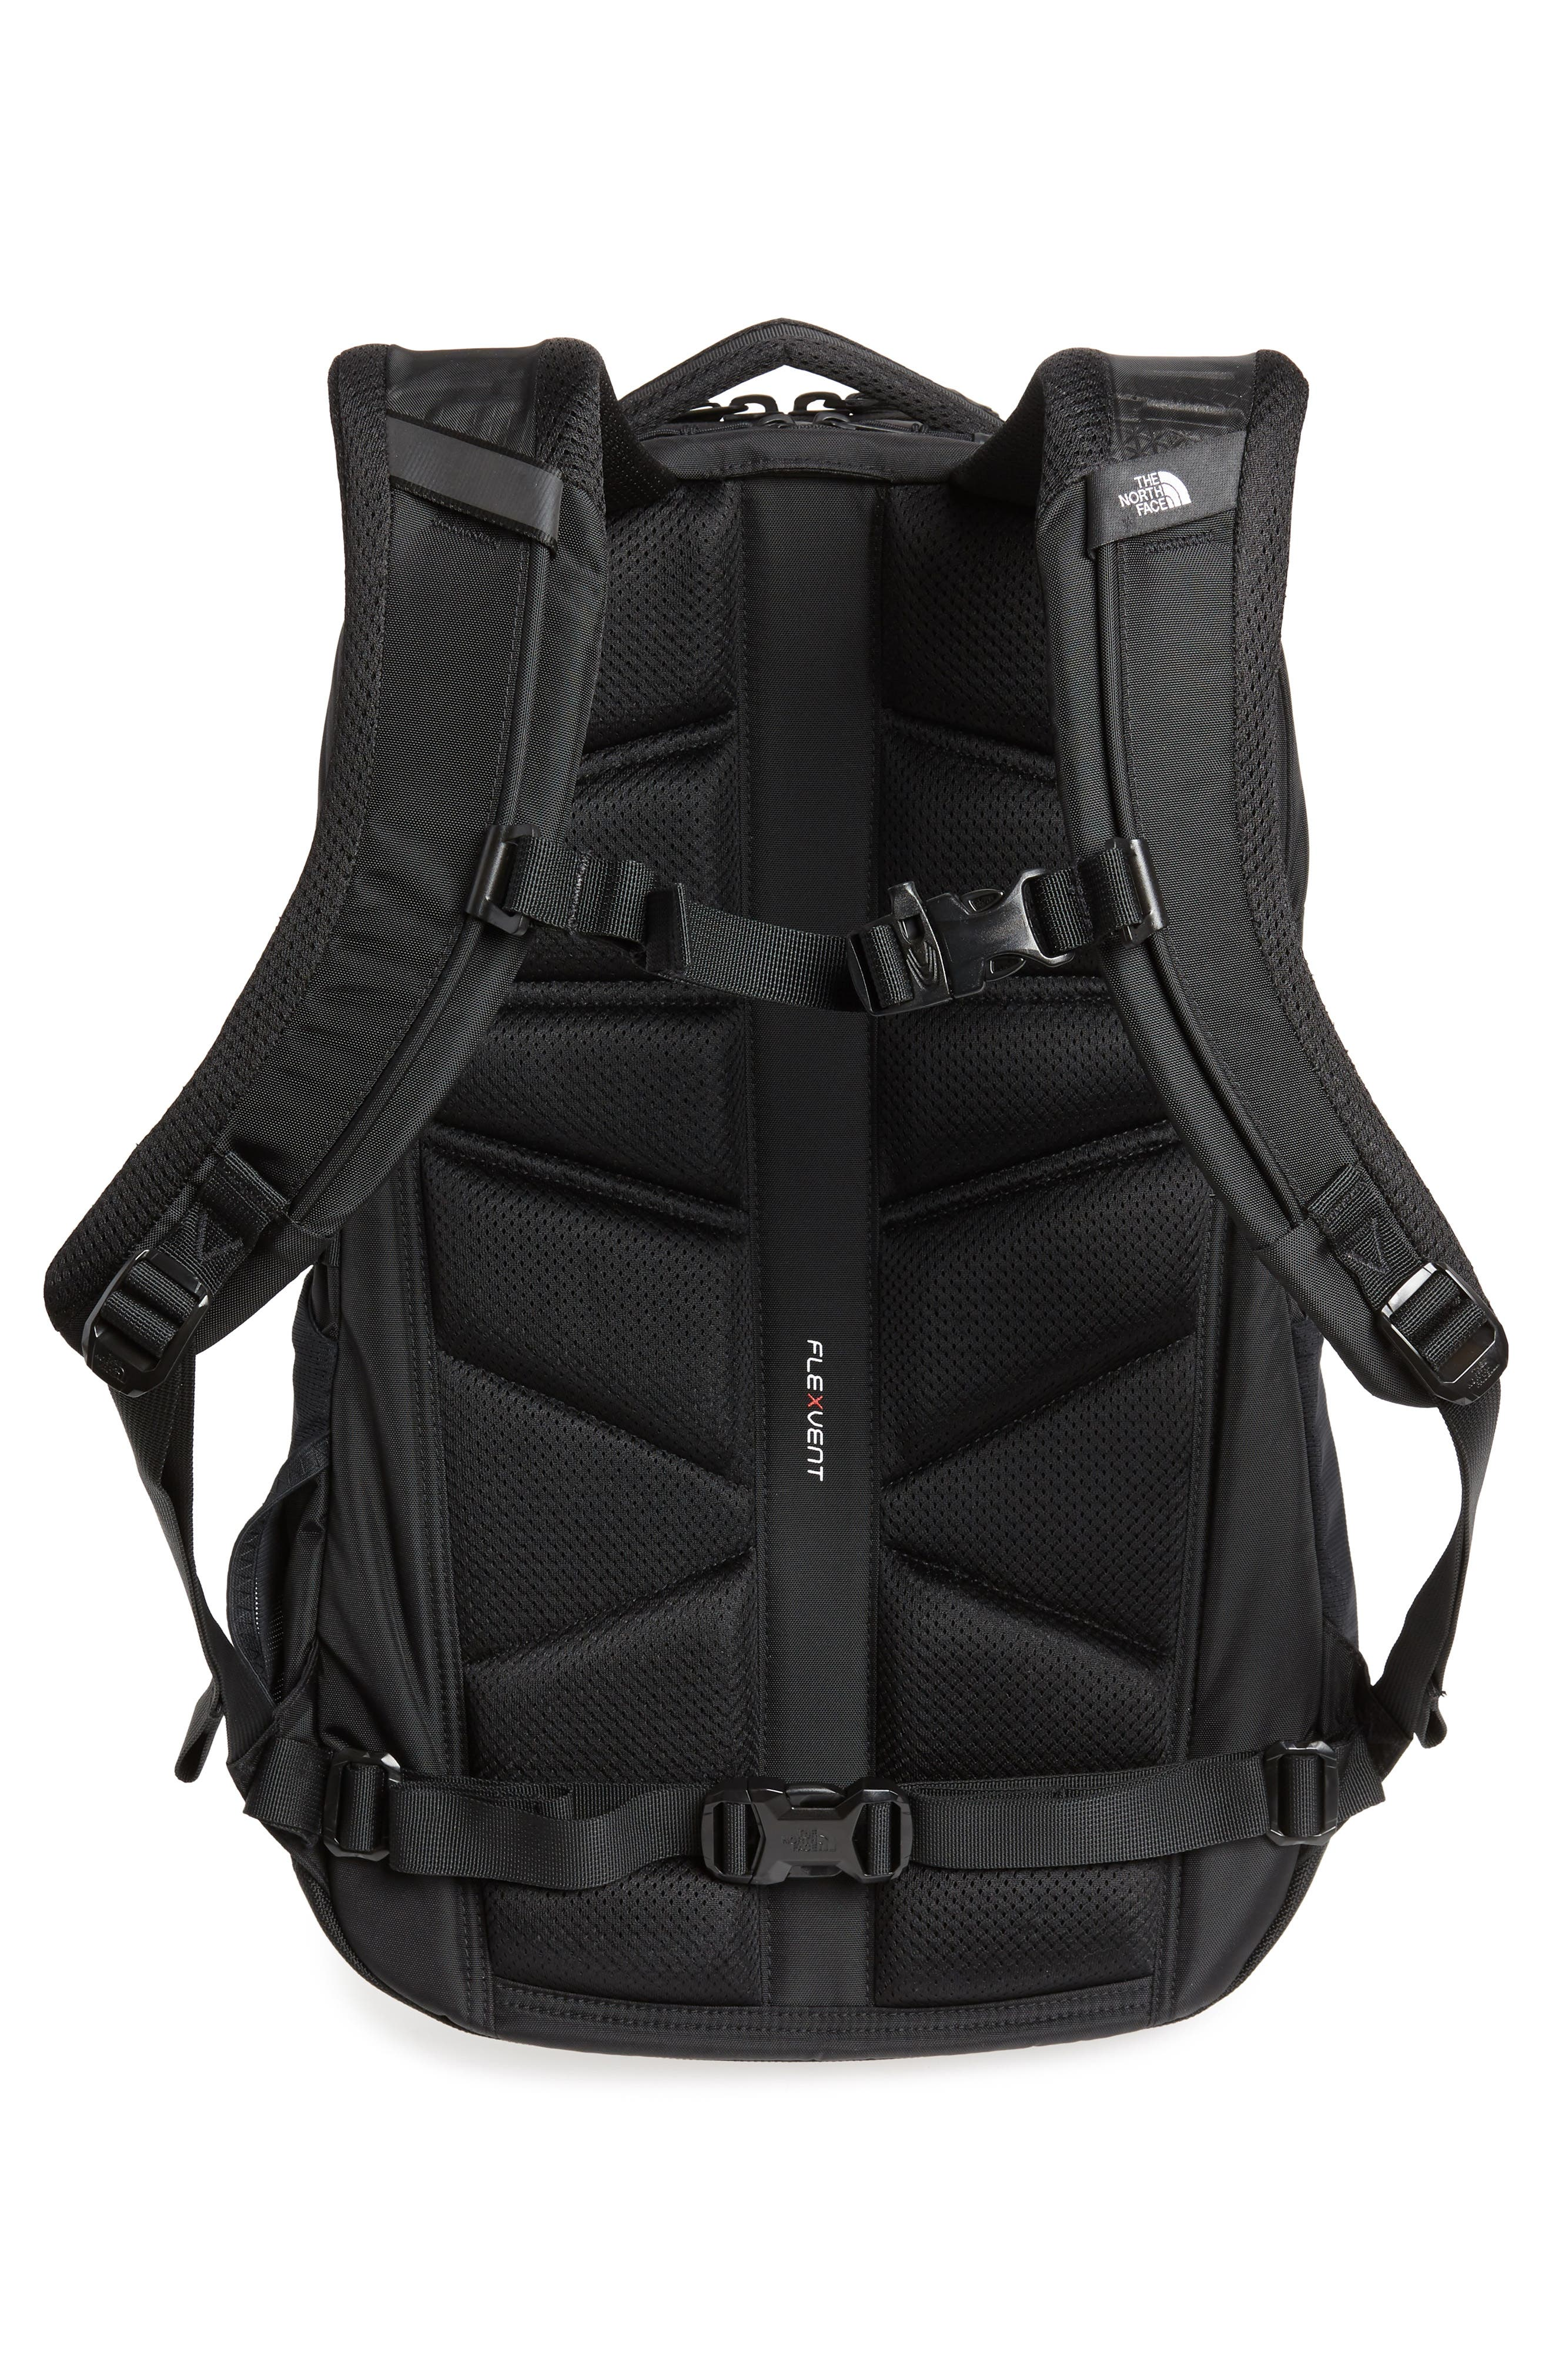 THE NORTH FACE,                             Borealis Backpack,                             Alternate thumbnail 2, color,                             001